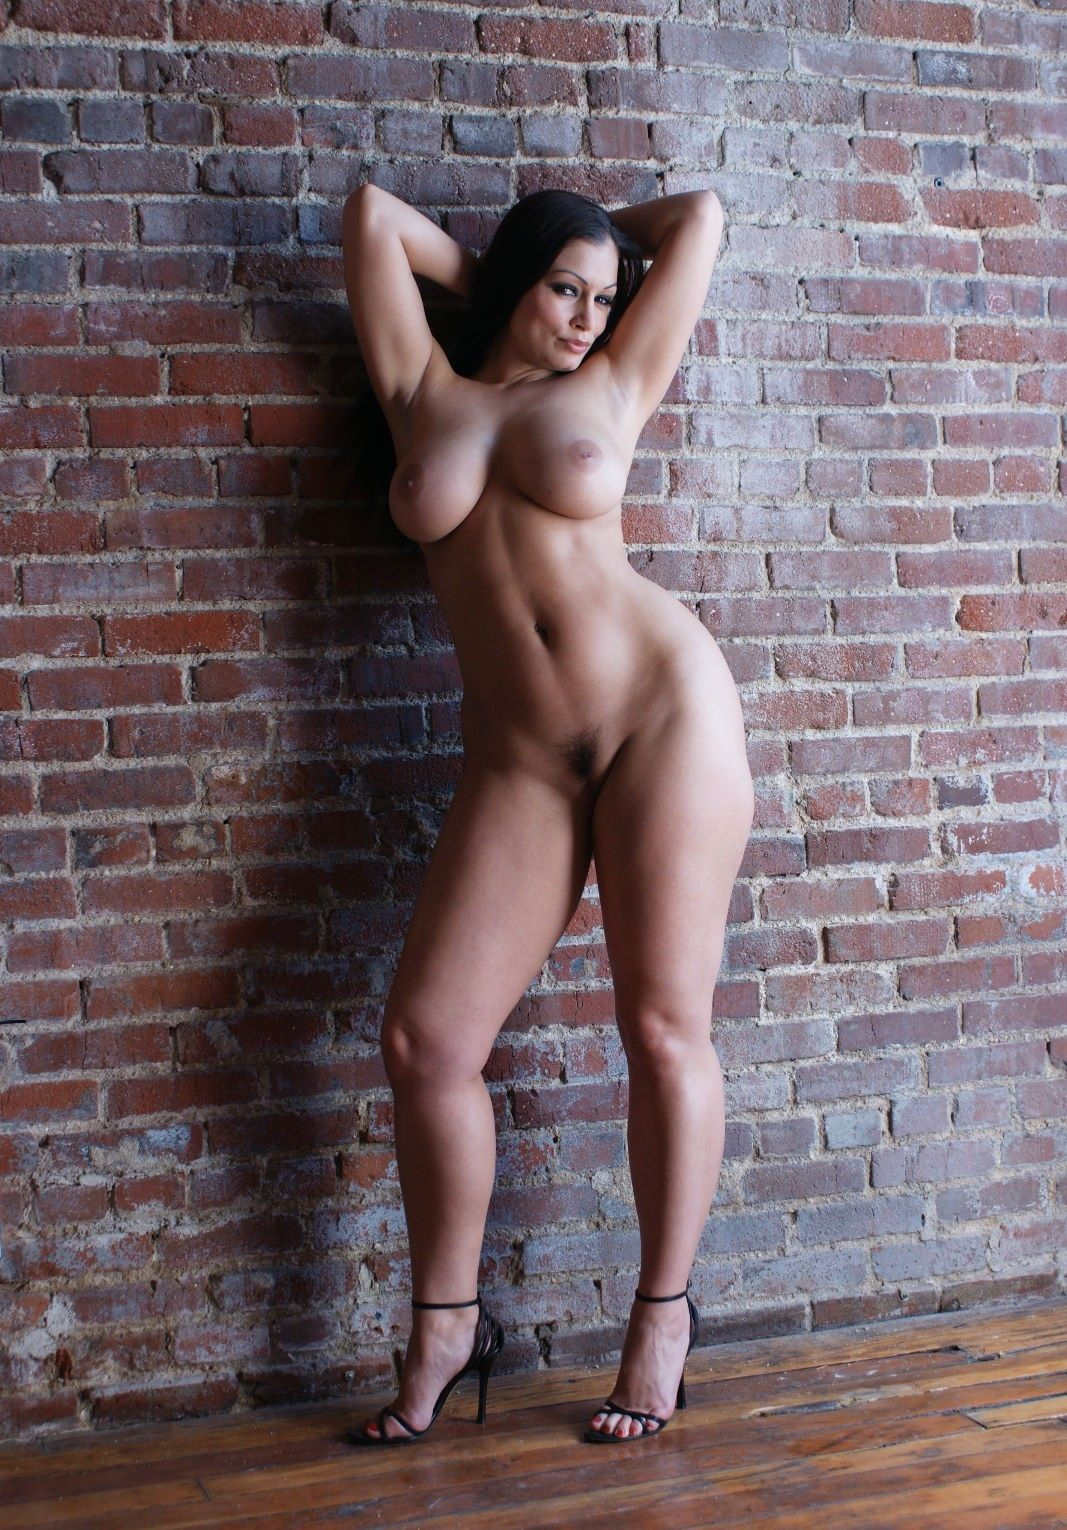 ms. aria giovanni | ariagiovanni | pinterest | naked, outdoors and boobs